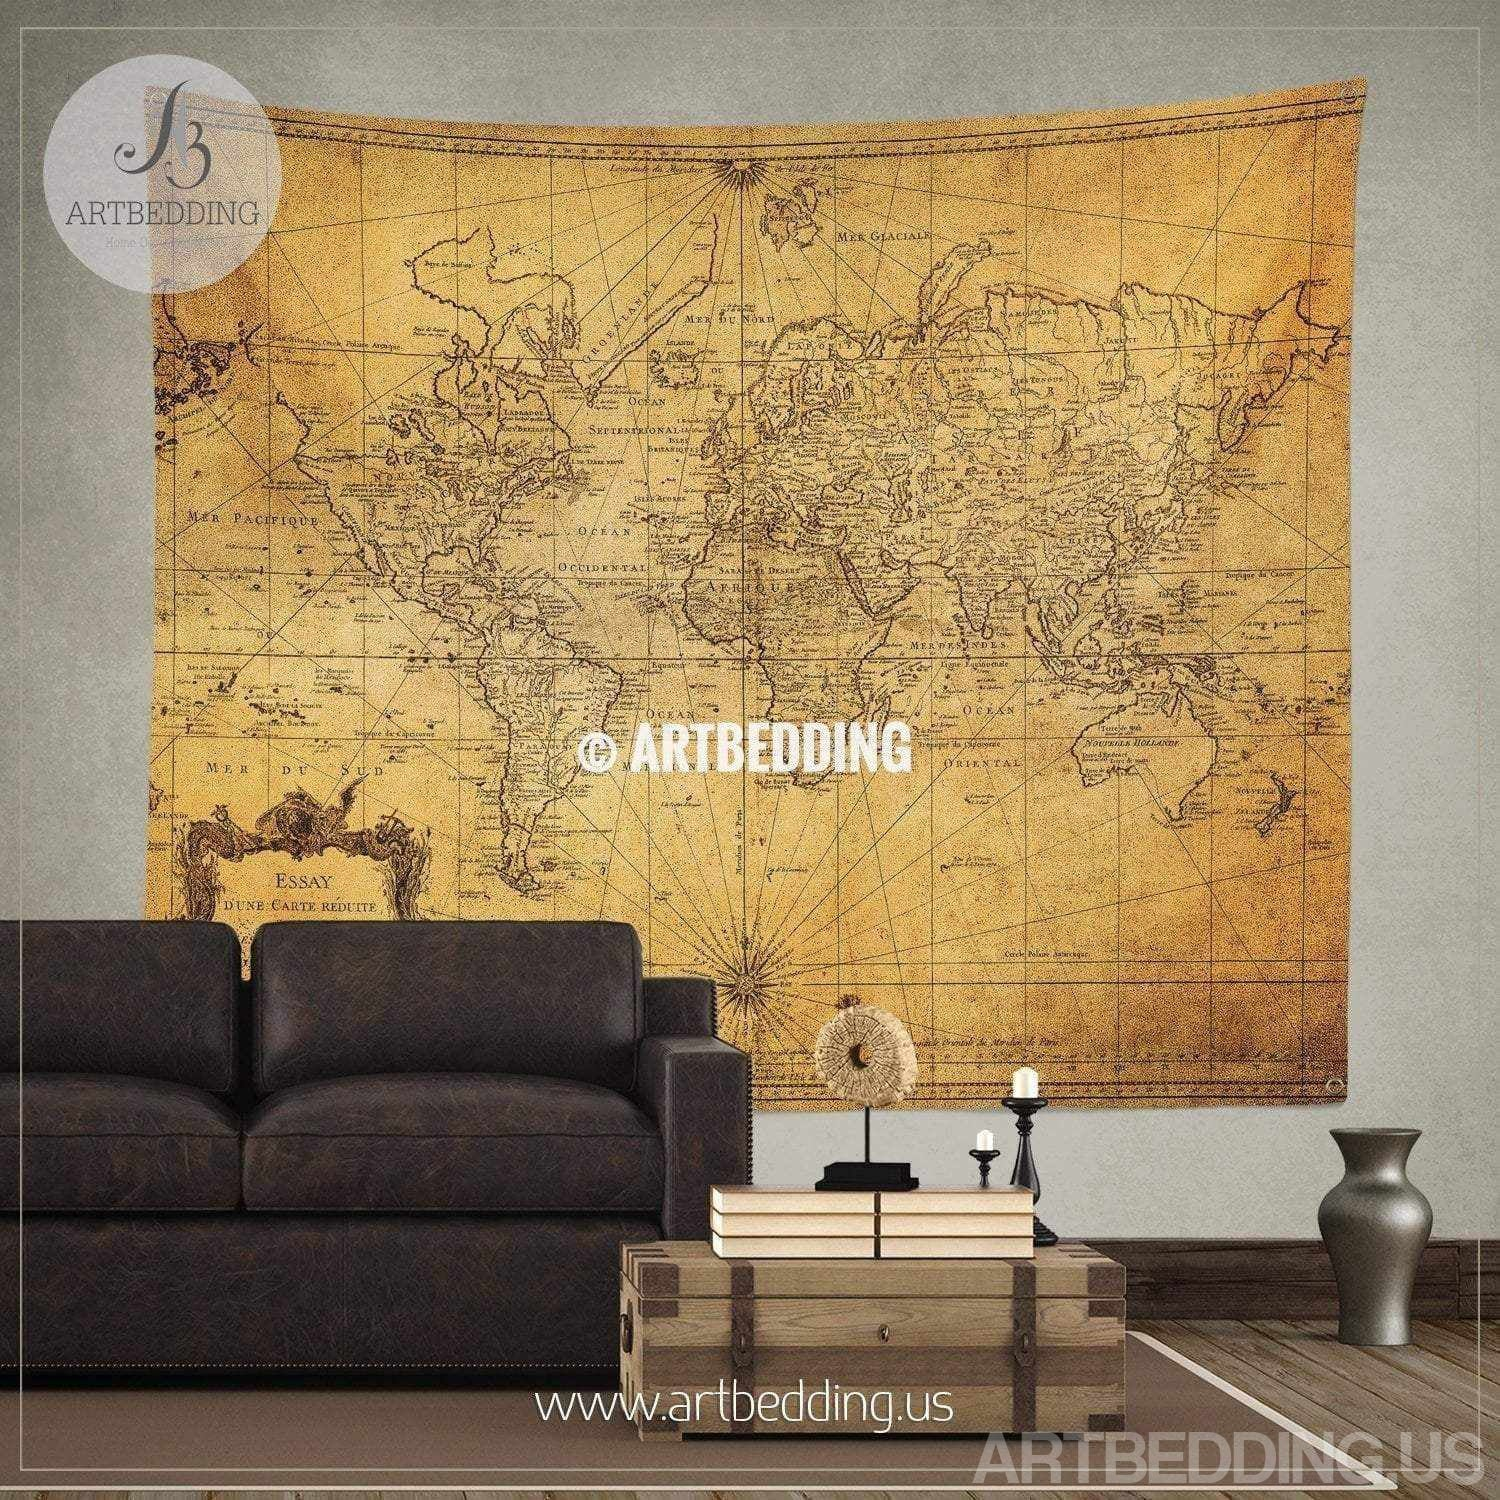 Vintage world map wall tapestry, Steampunk ancient world map wall hanging, on world map flooring, world map wall mural, world map lanterns, world map dining room, world map stationery, world map decorative box, world map wall office, world map pillows, world map comforter set, world map bookends, world map rings, world map games, world map wall decal, world map wall cling, world map vases, world map mirrors, world map wall paint, world map vintage, world map floral, world map apparel,